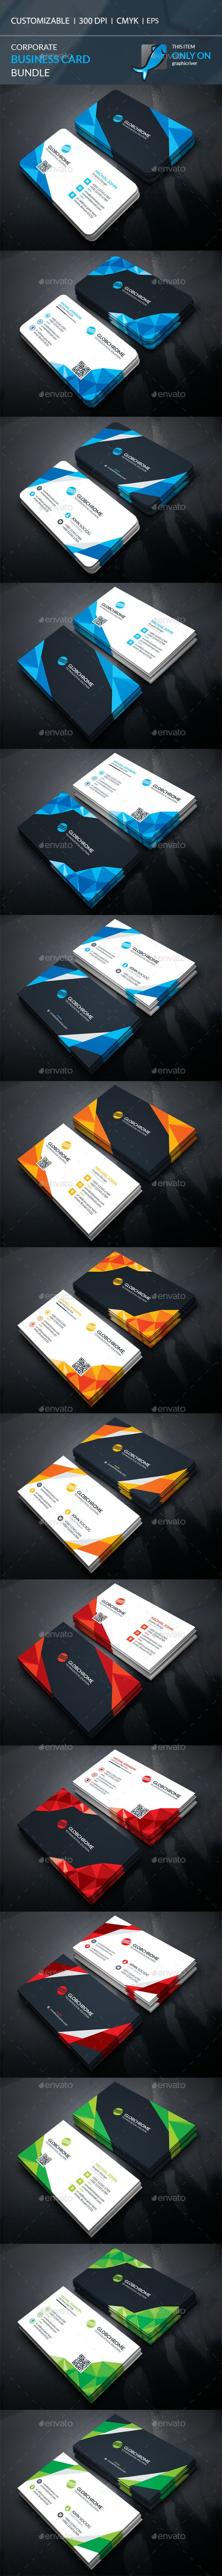 19 best business cards images on pinterest